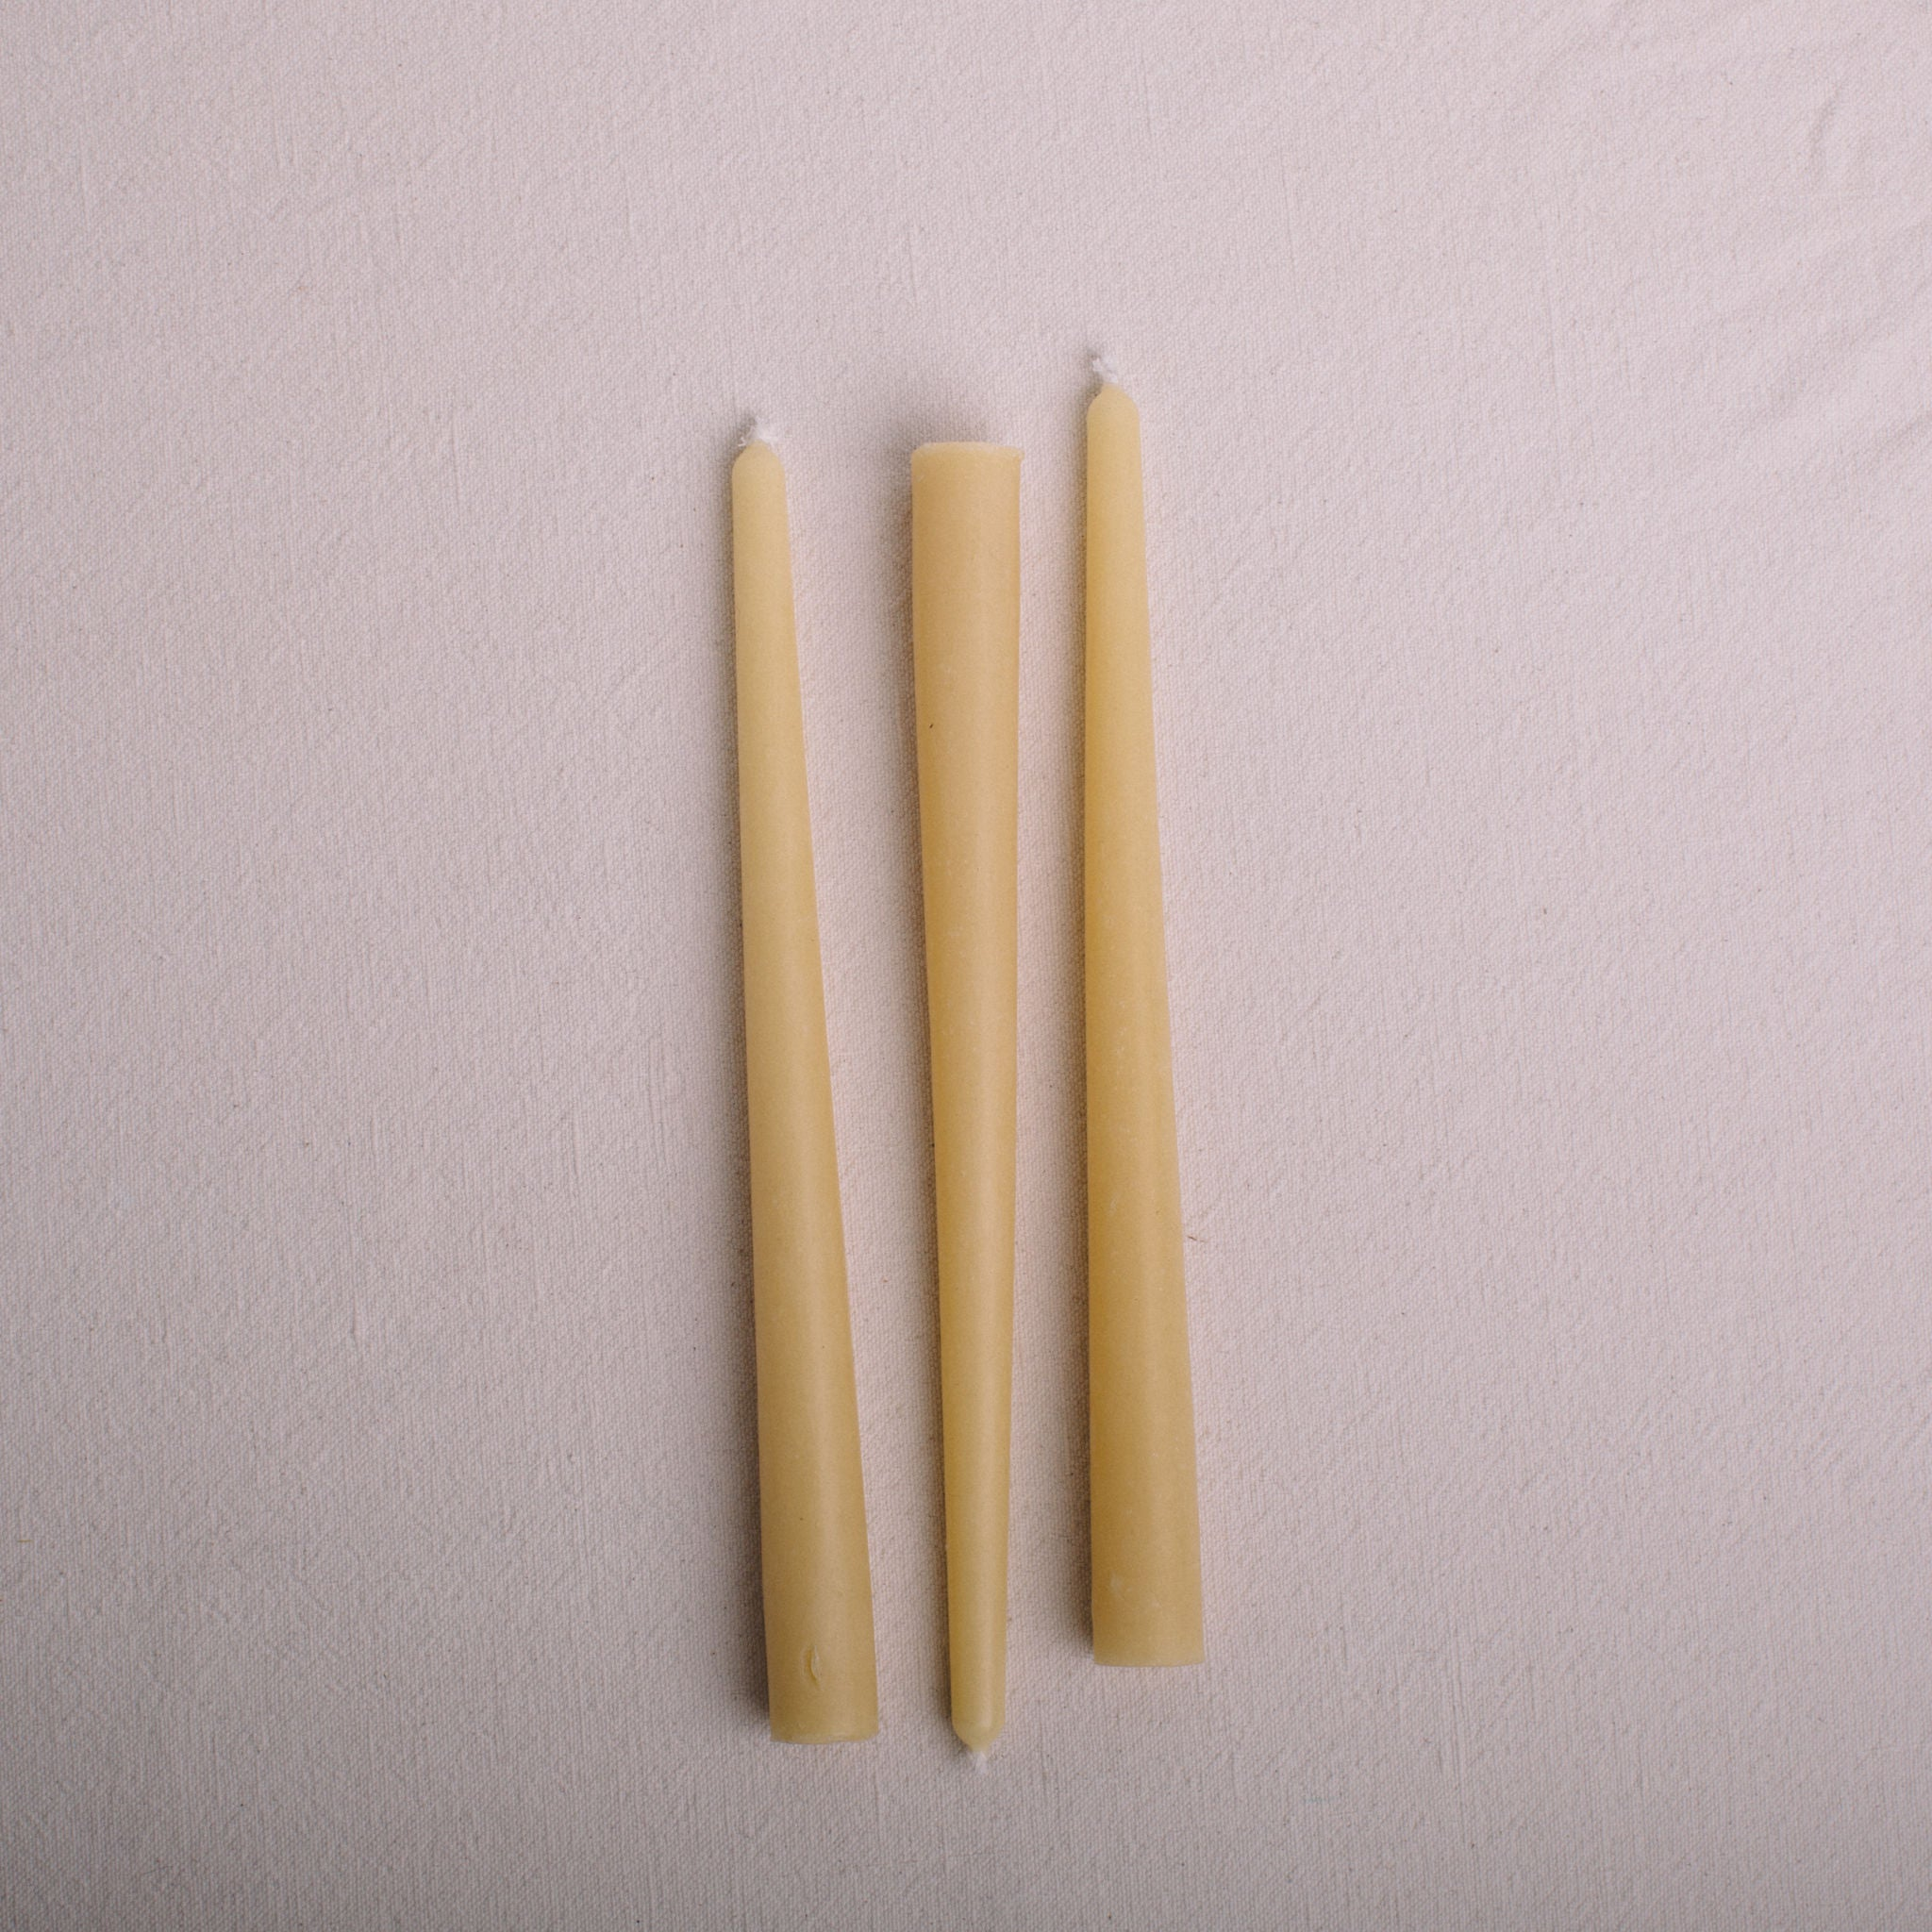 LA GRA || BEESWAX CANDLES